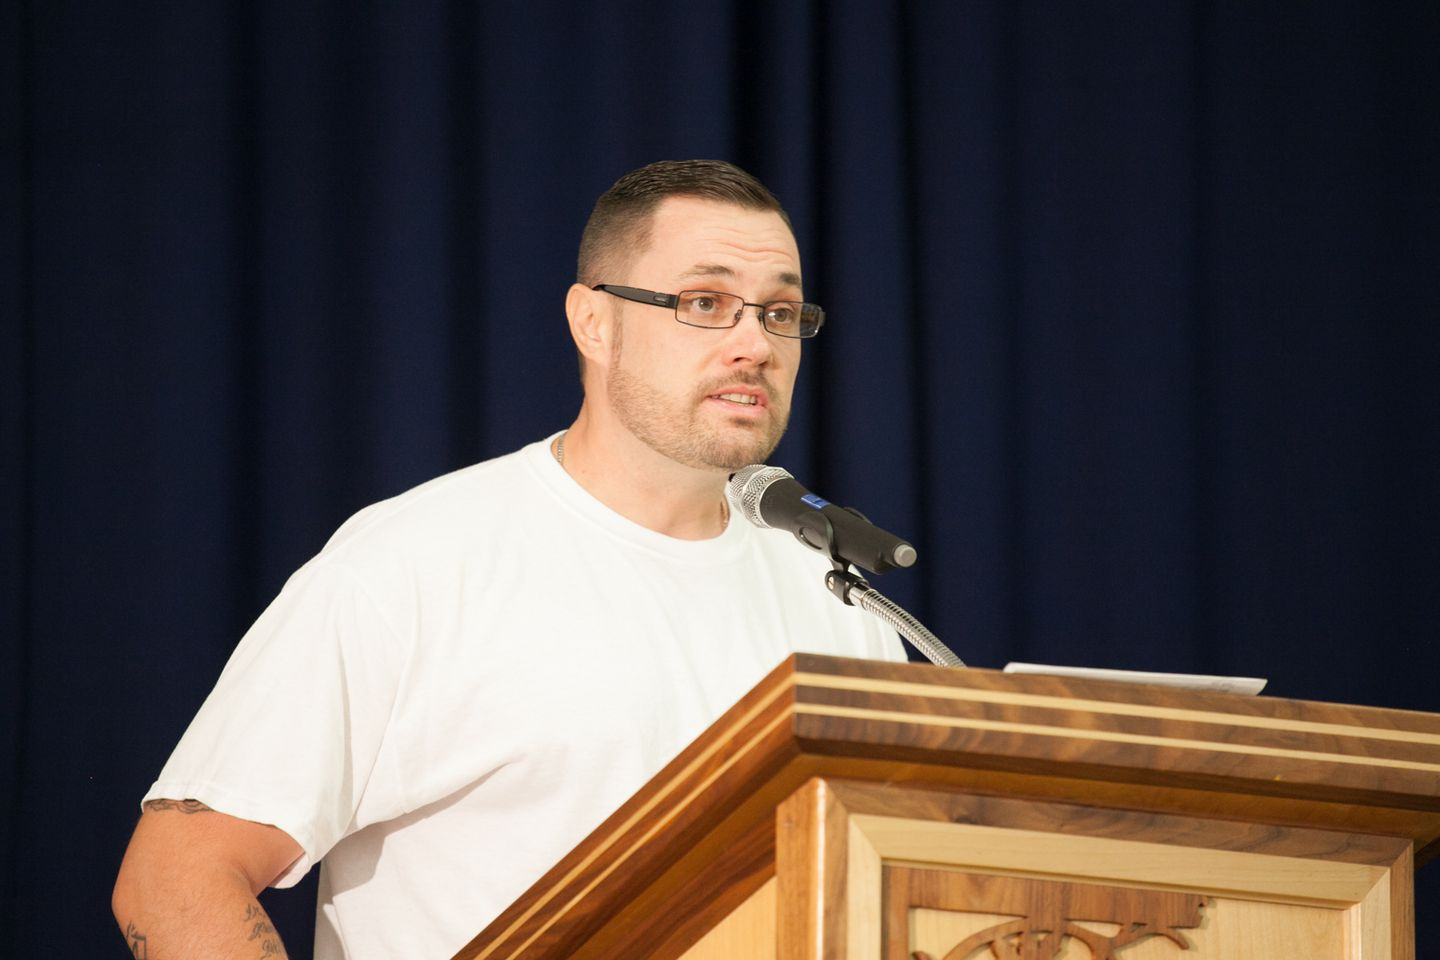 The author addressing the audience at a Concerned Lifers Organization Conference at the Washington State Reformatory, 2017.